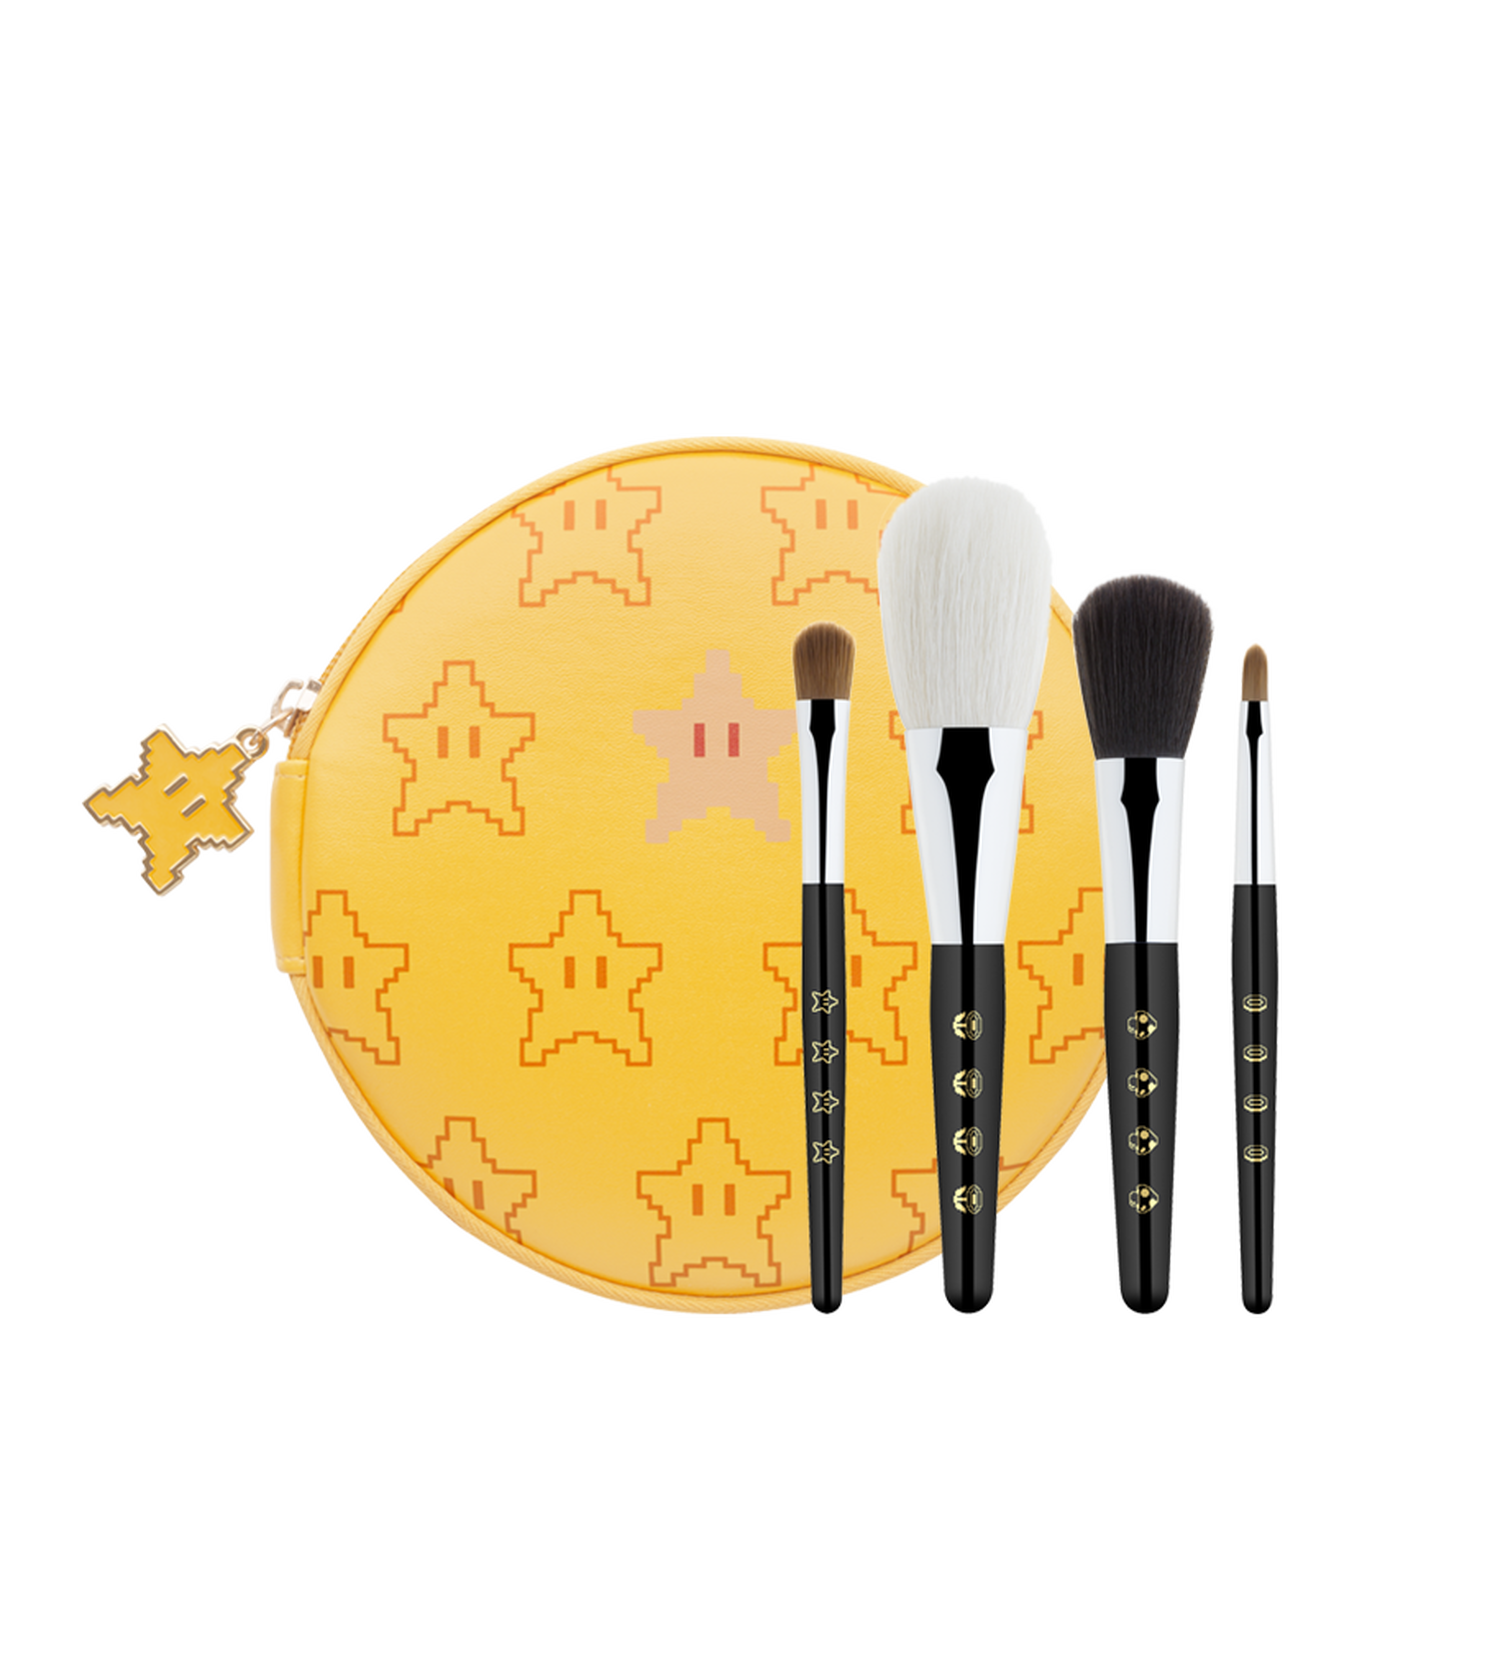 peach's favorite premium brush set shu uemura art of